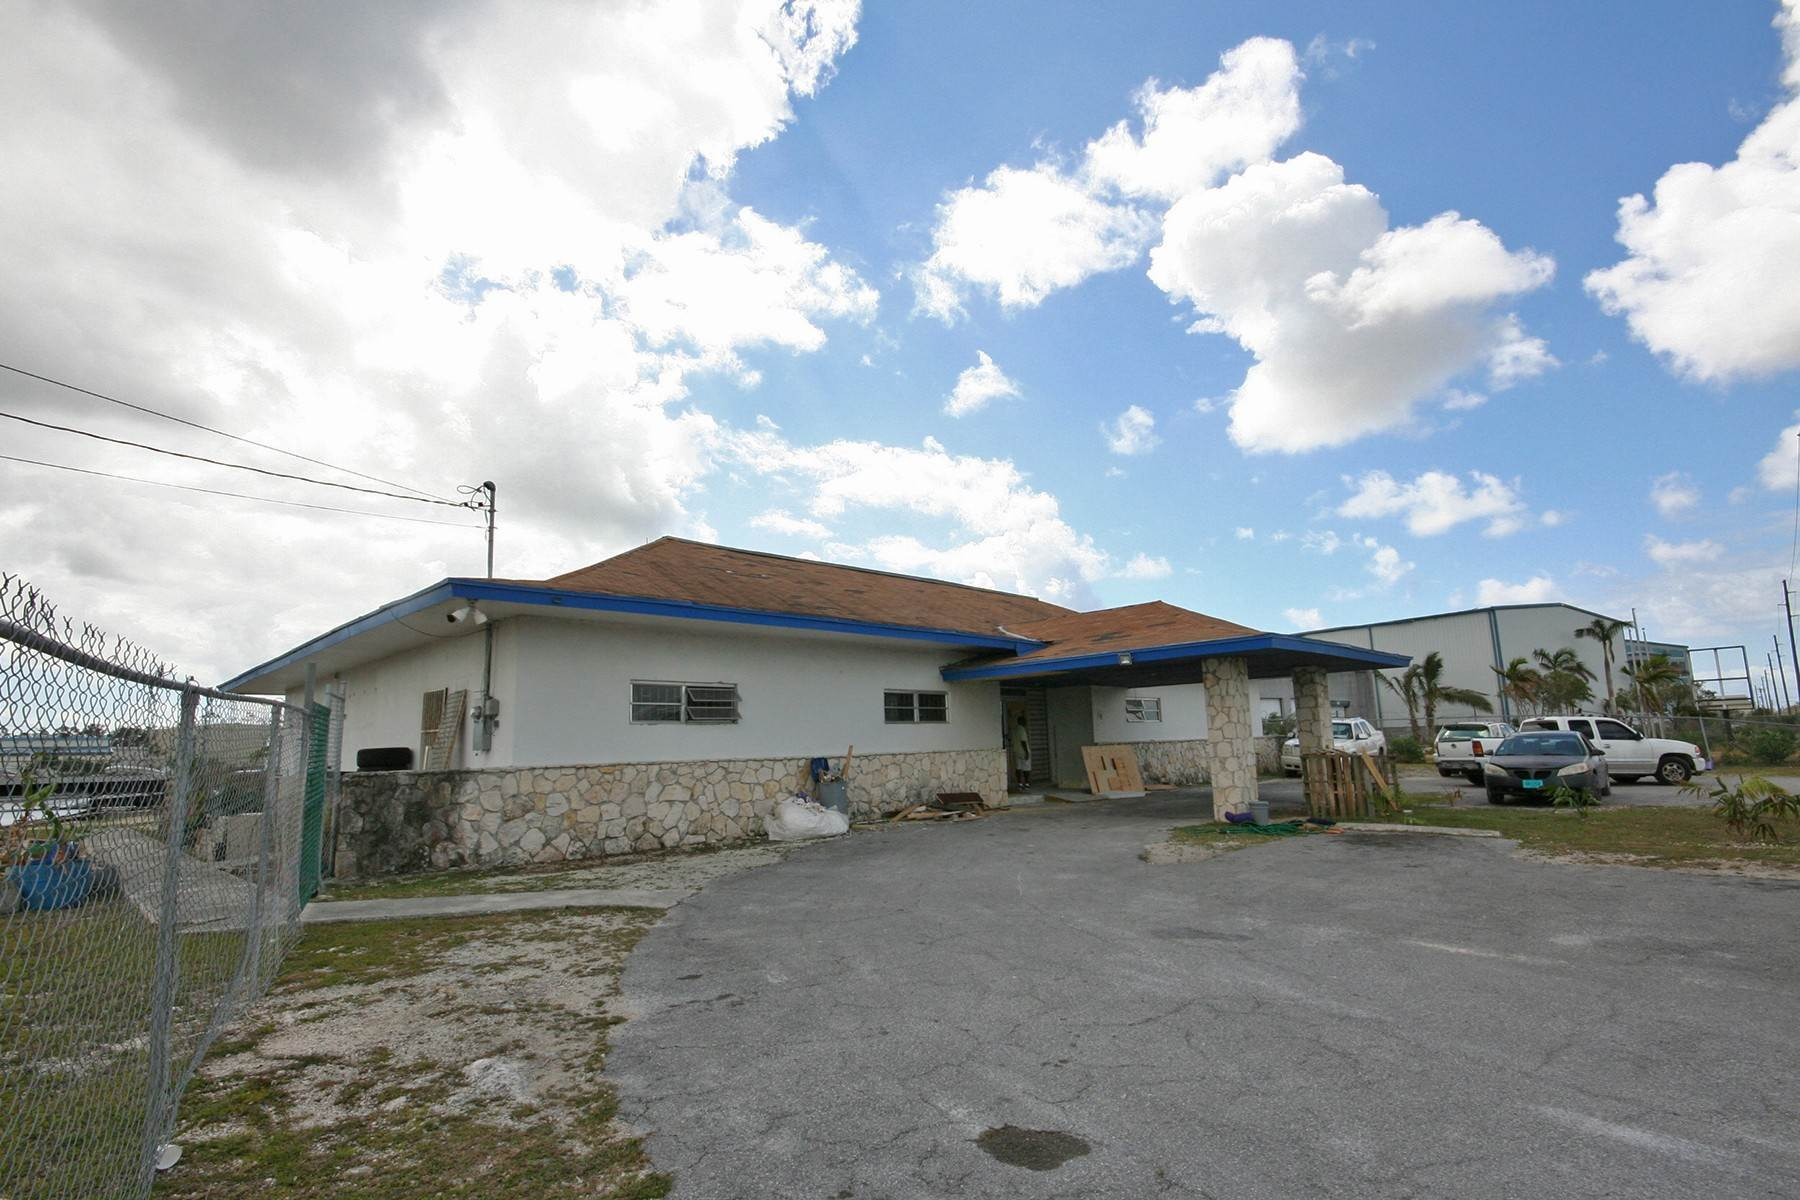 Commercial for Sale at Commercial Building On Queens Highway - Freeport Civic Industrial Area - MLS 29441 Civic Industrial Area, Freeport And Grand Bahama, Bahamas